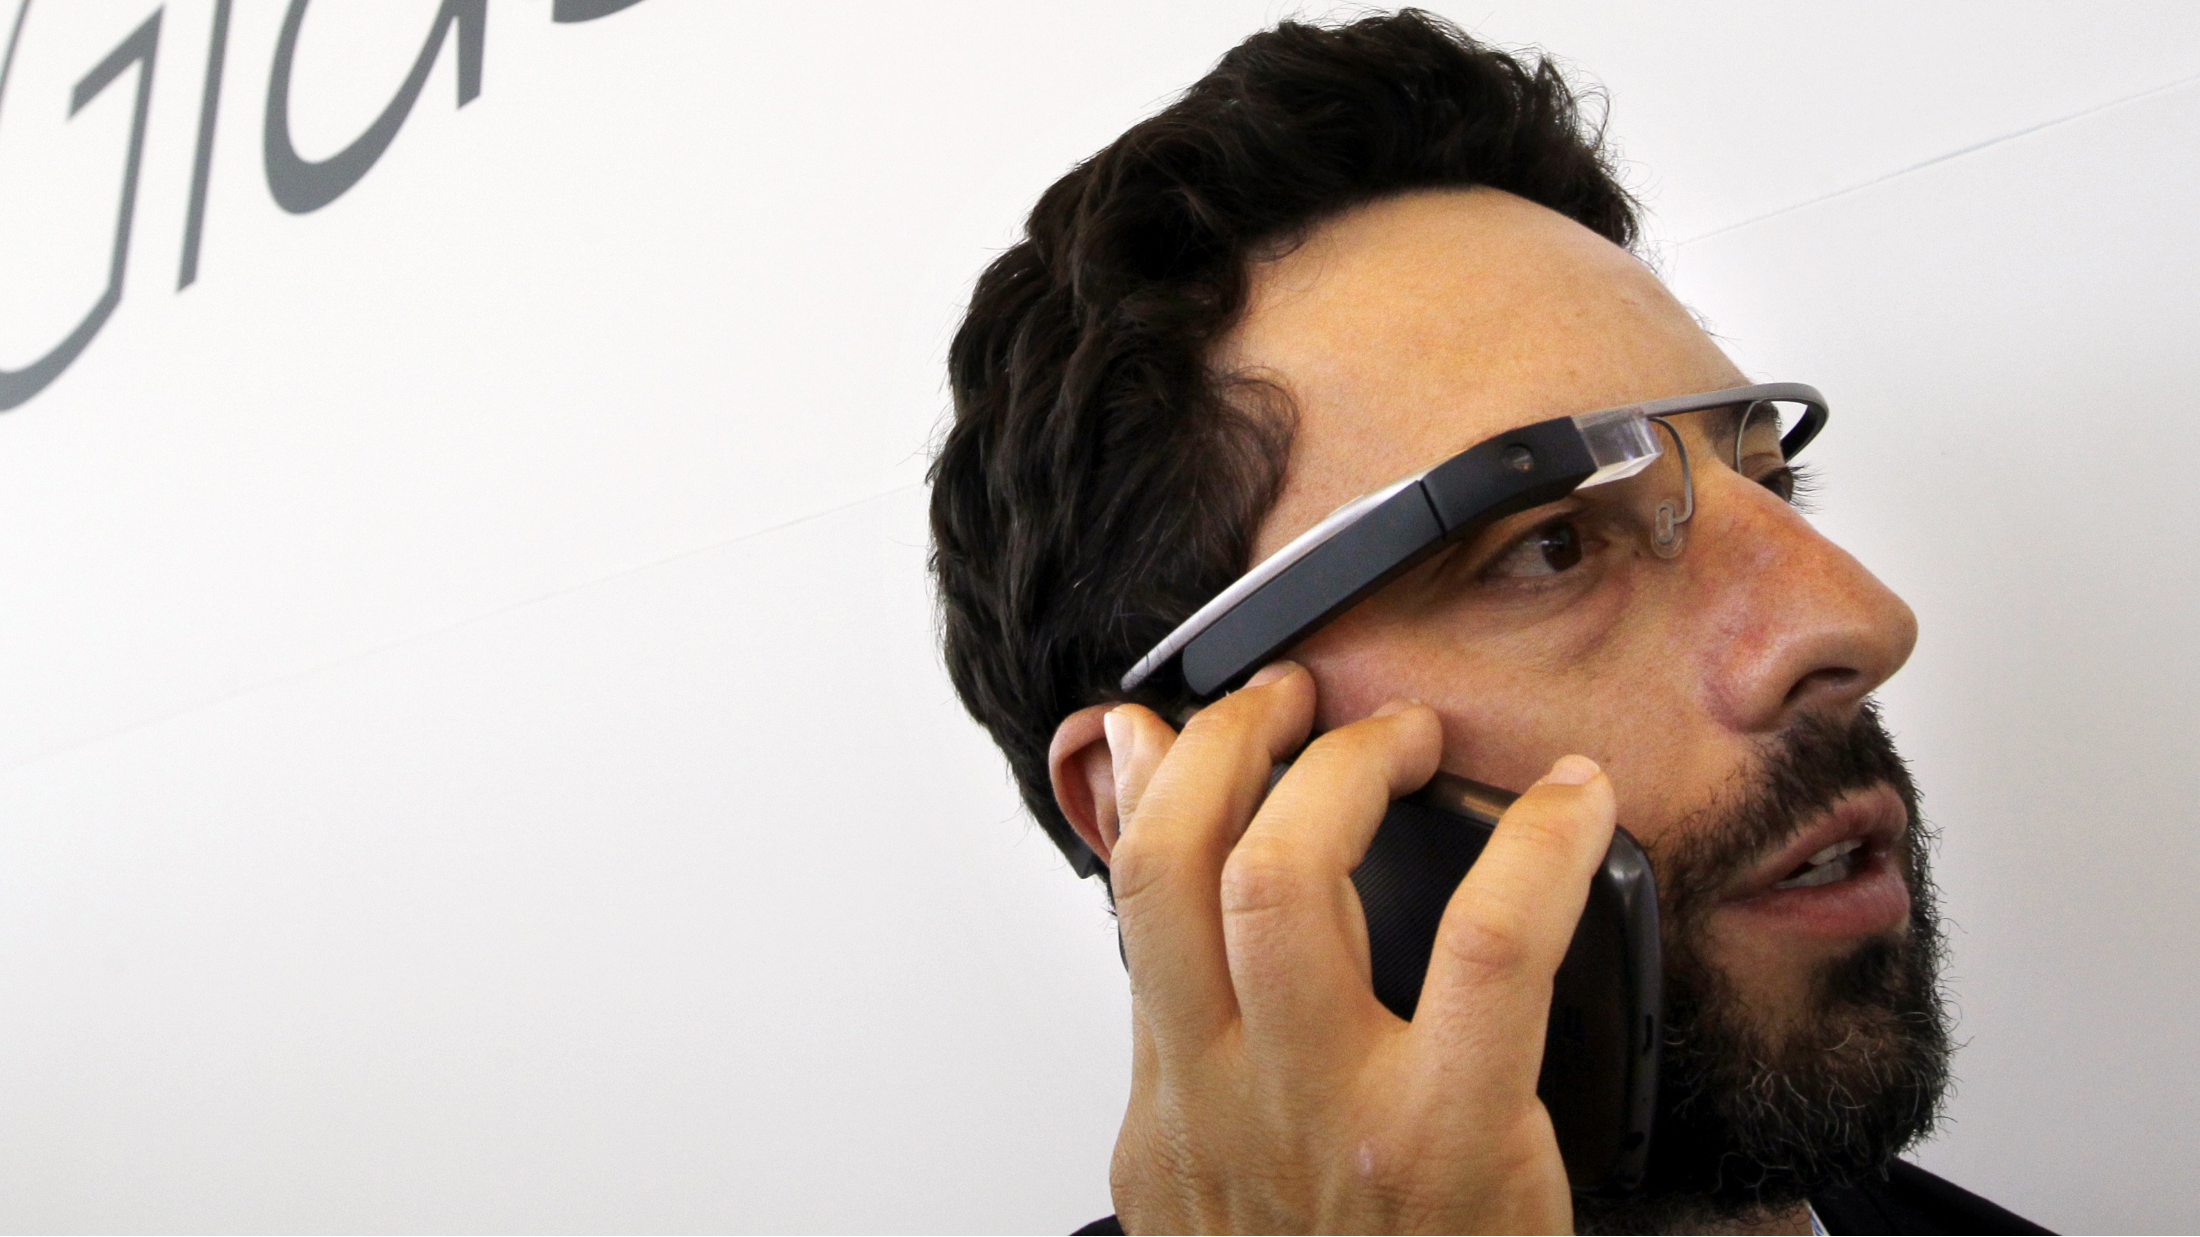 Google co-founder Sergey Brin talks on the phone as he wears Google's new Internet-connected glasses at the Google I/O conference in San Francisco, Wednesday, June 27, 2012. Google is making prototypes of the device, known as Project Glass, available to test. They can only be purchased — for $1,500 — at the conference this week, for delivery early next year.